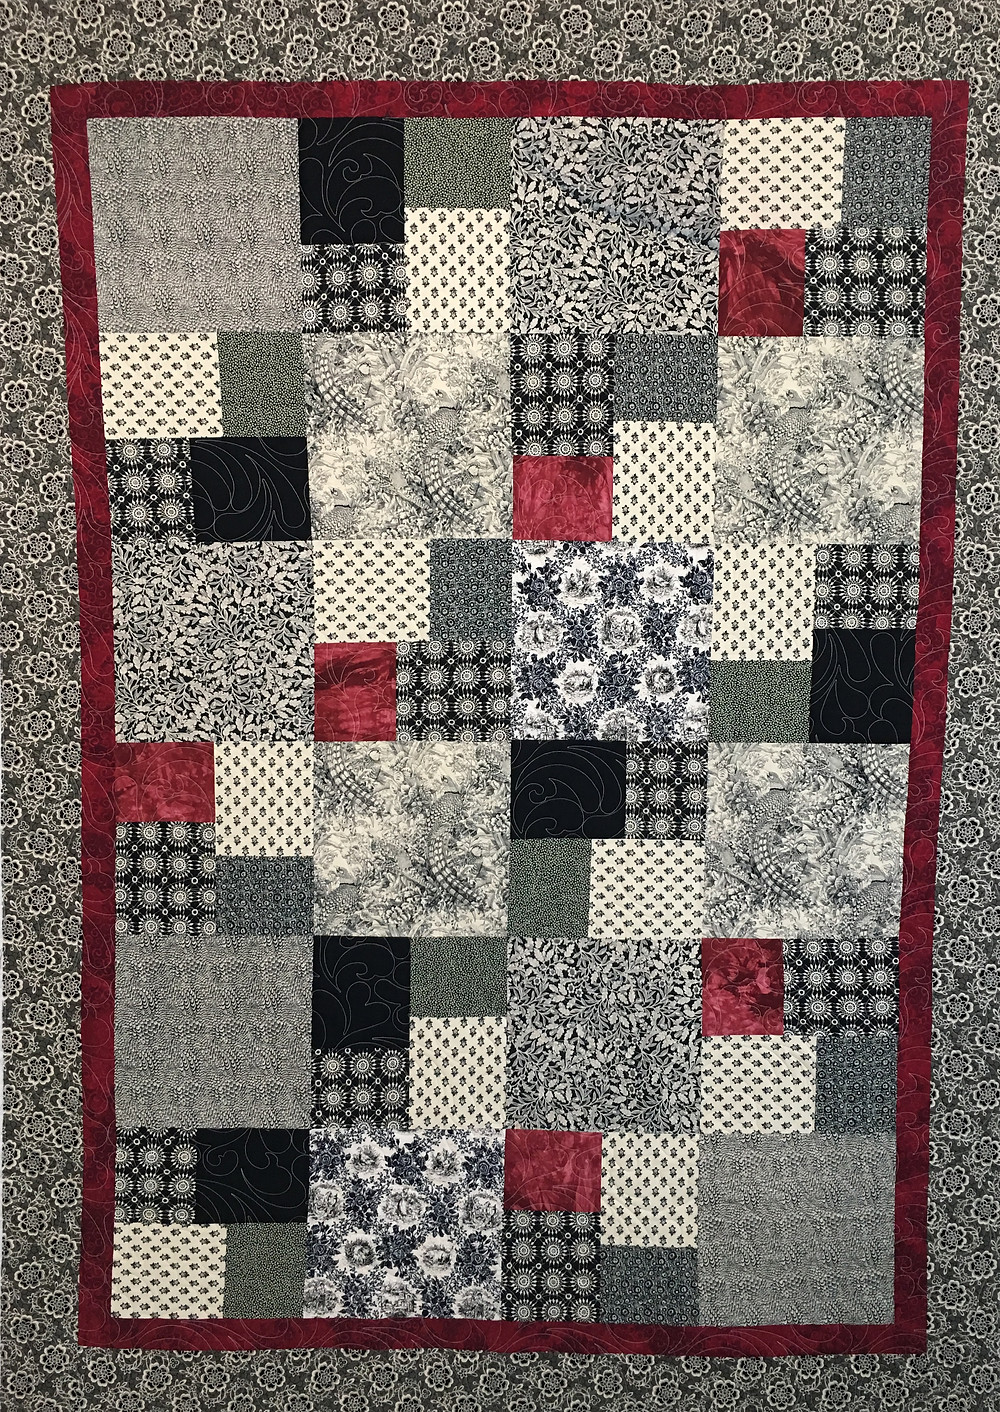 Squares in a Square Quilt by Debbie Seitz